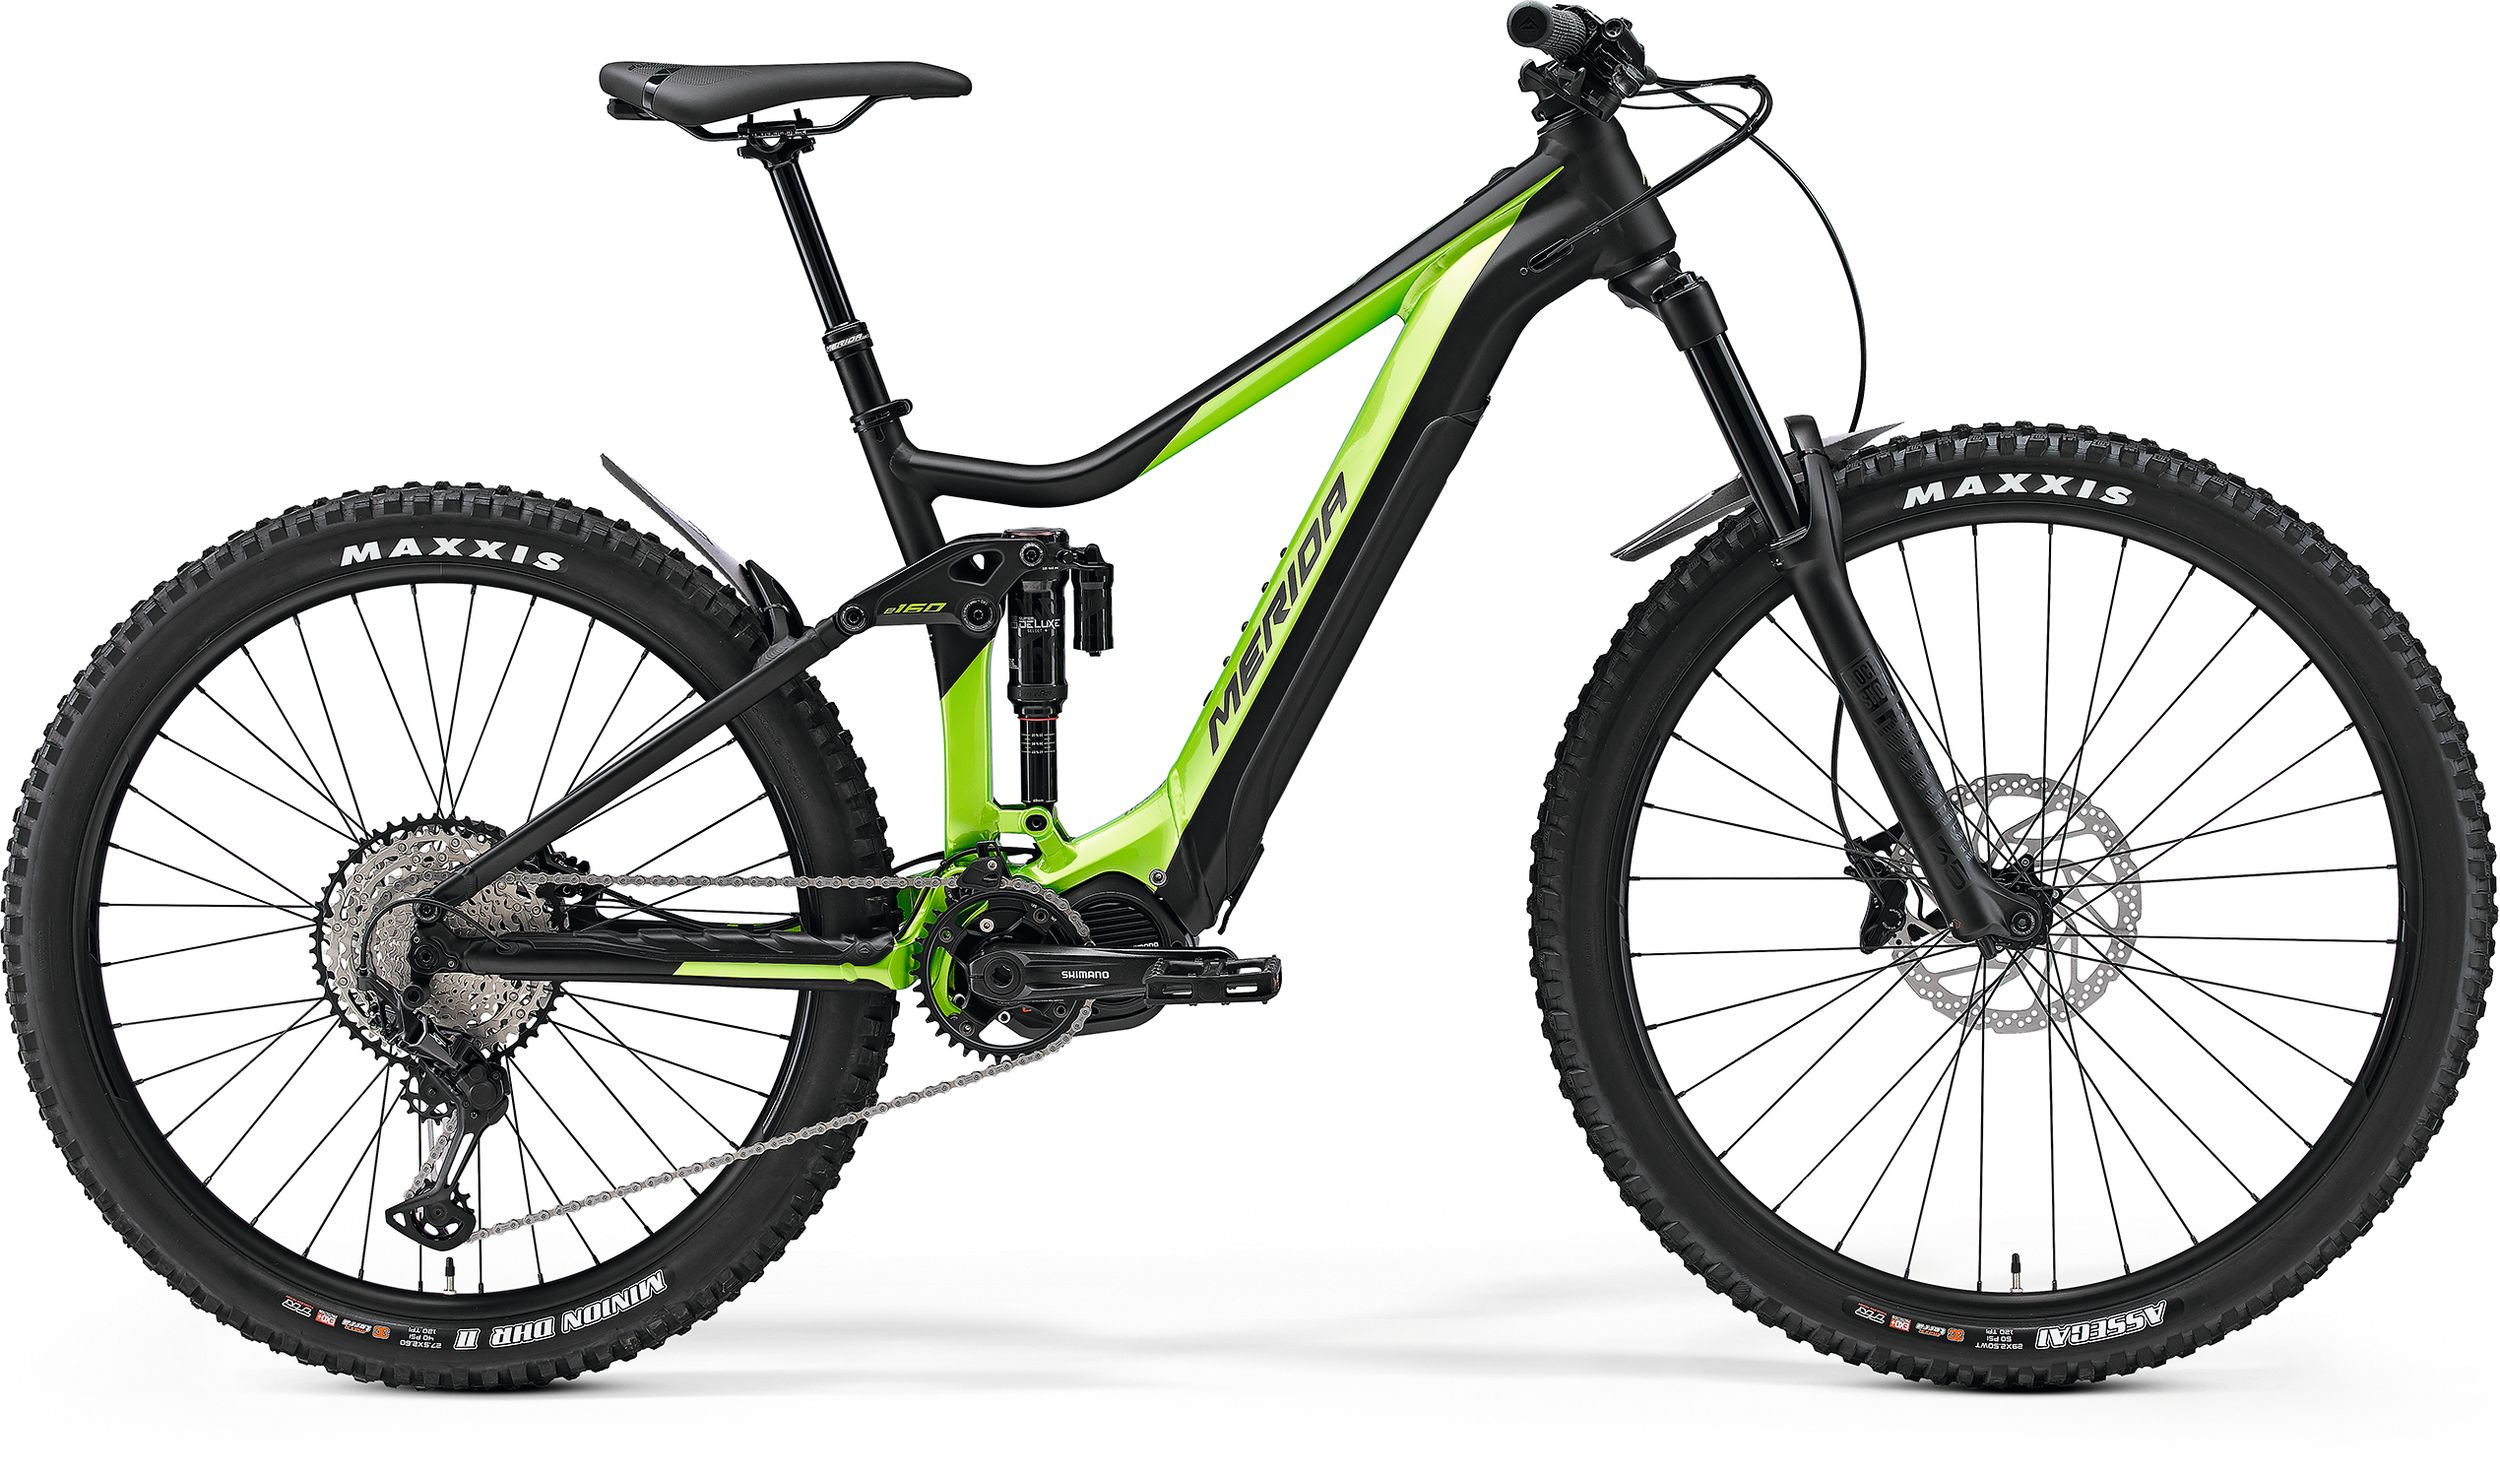 2020 MERIDA E ONE-SIXTY